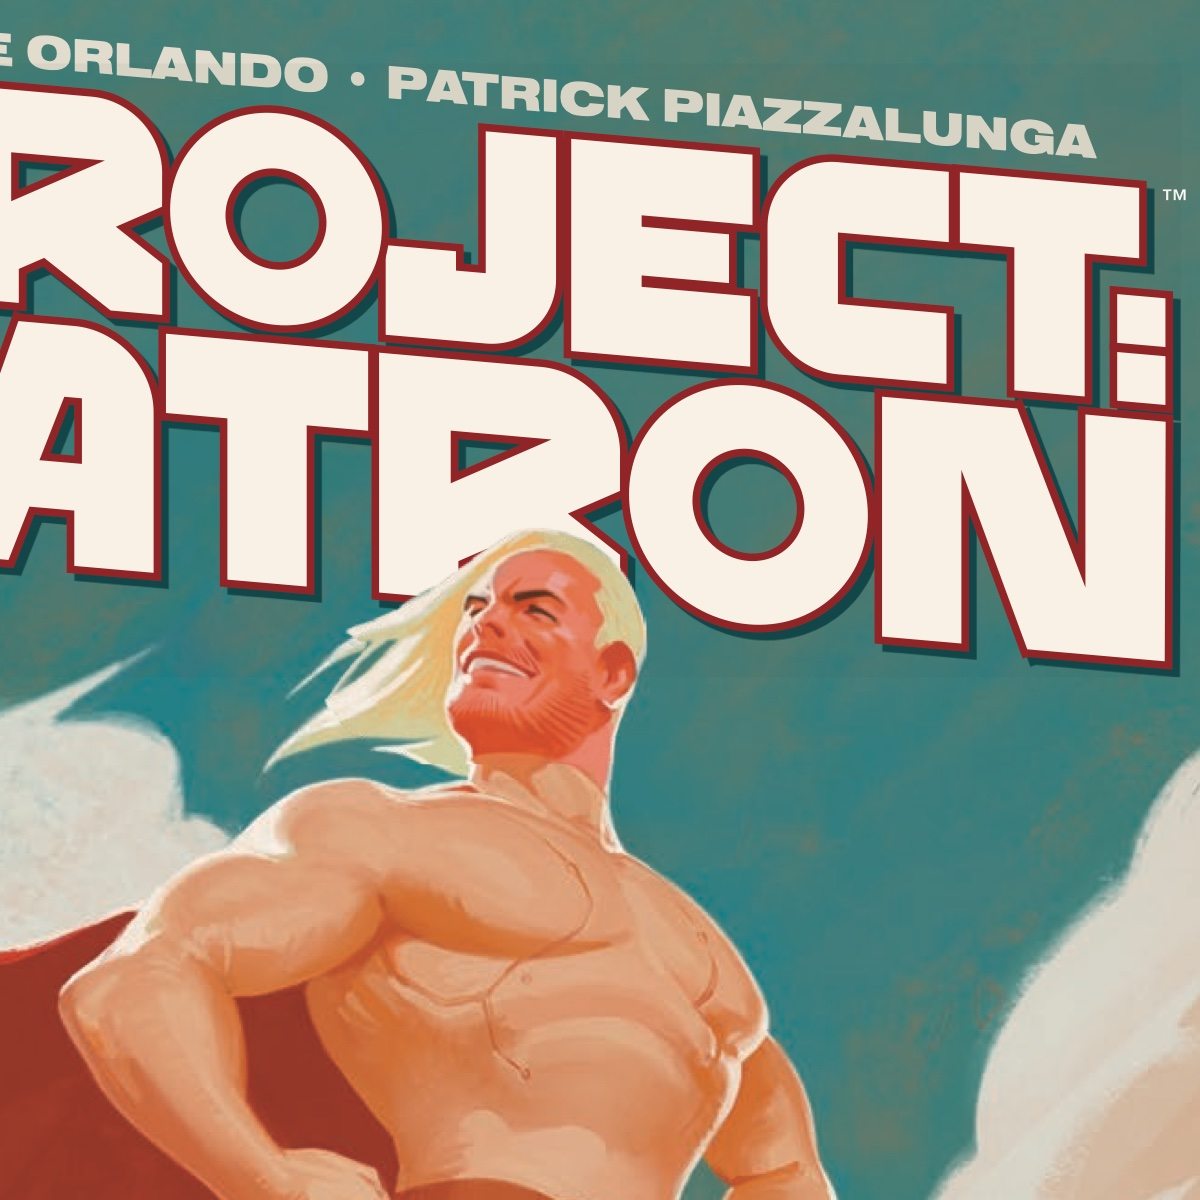 Project: Patron Featured Image